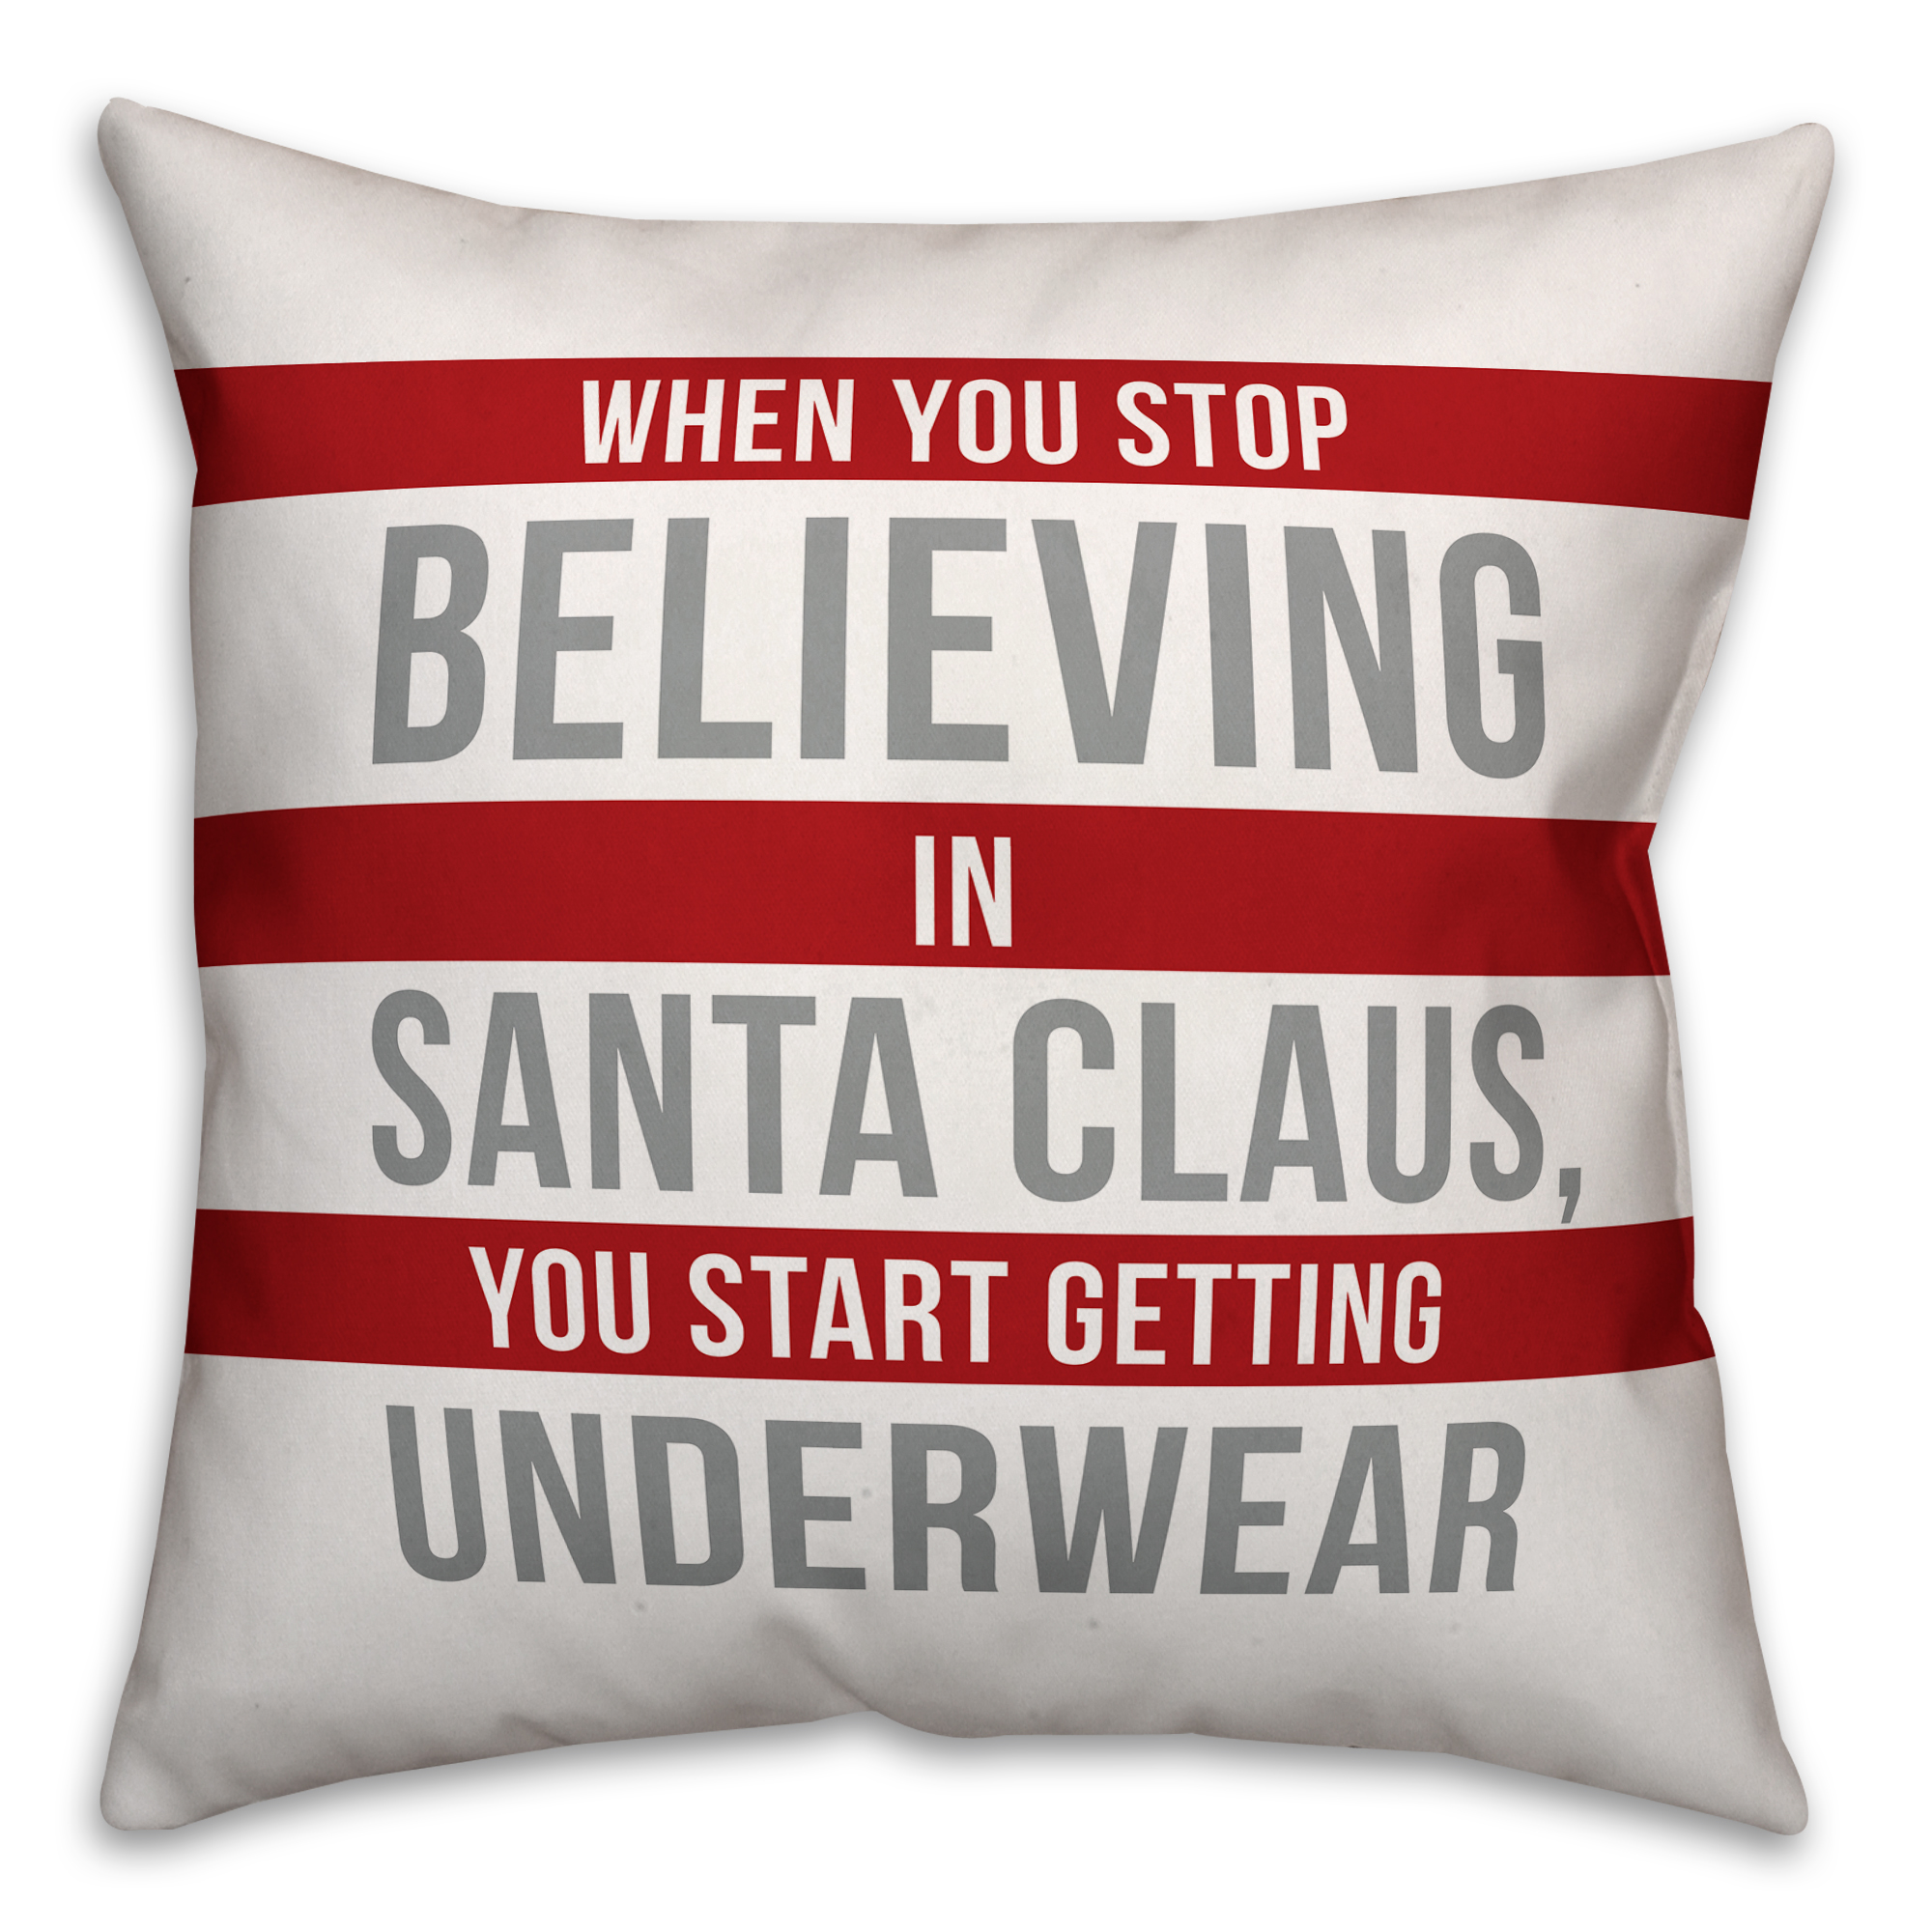 Don't Stop Believing in Santa Claus 20x20 Spun Poly Pillow Cover